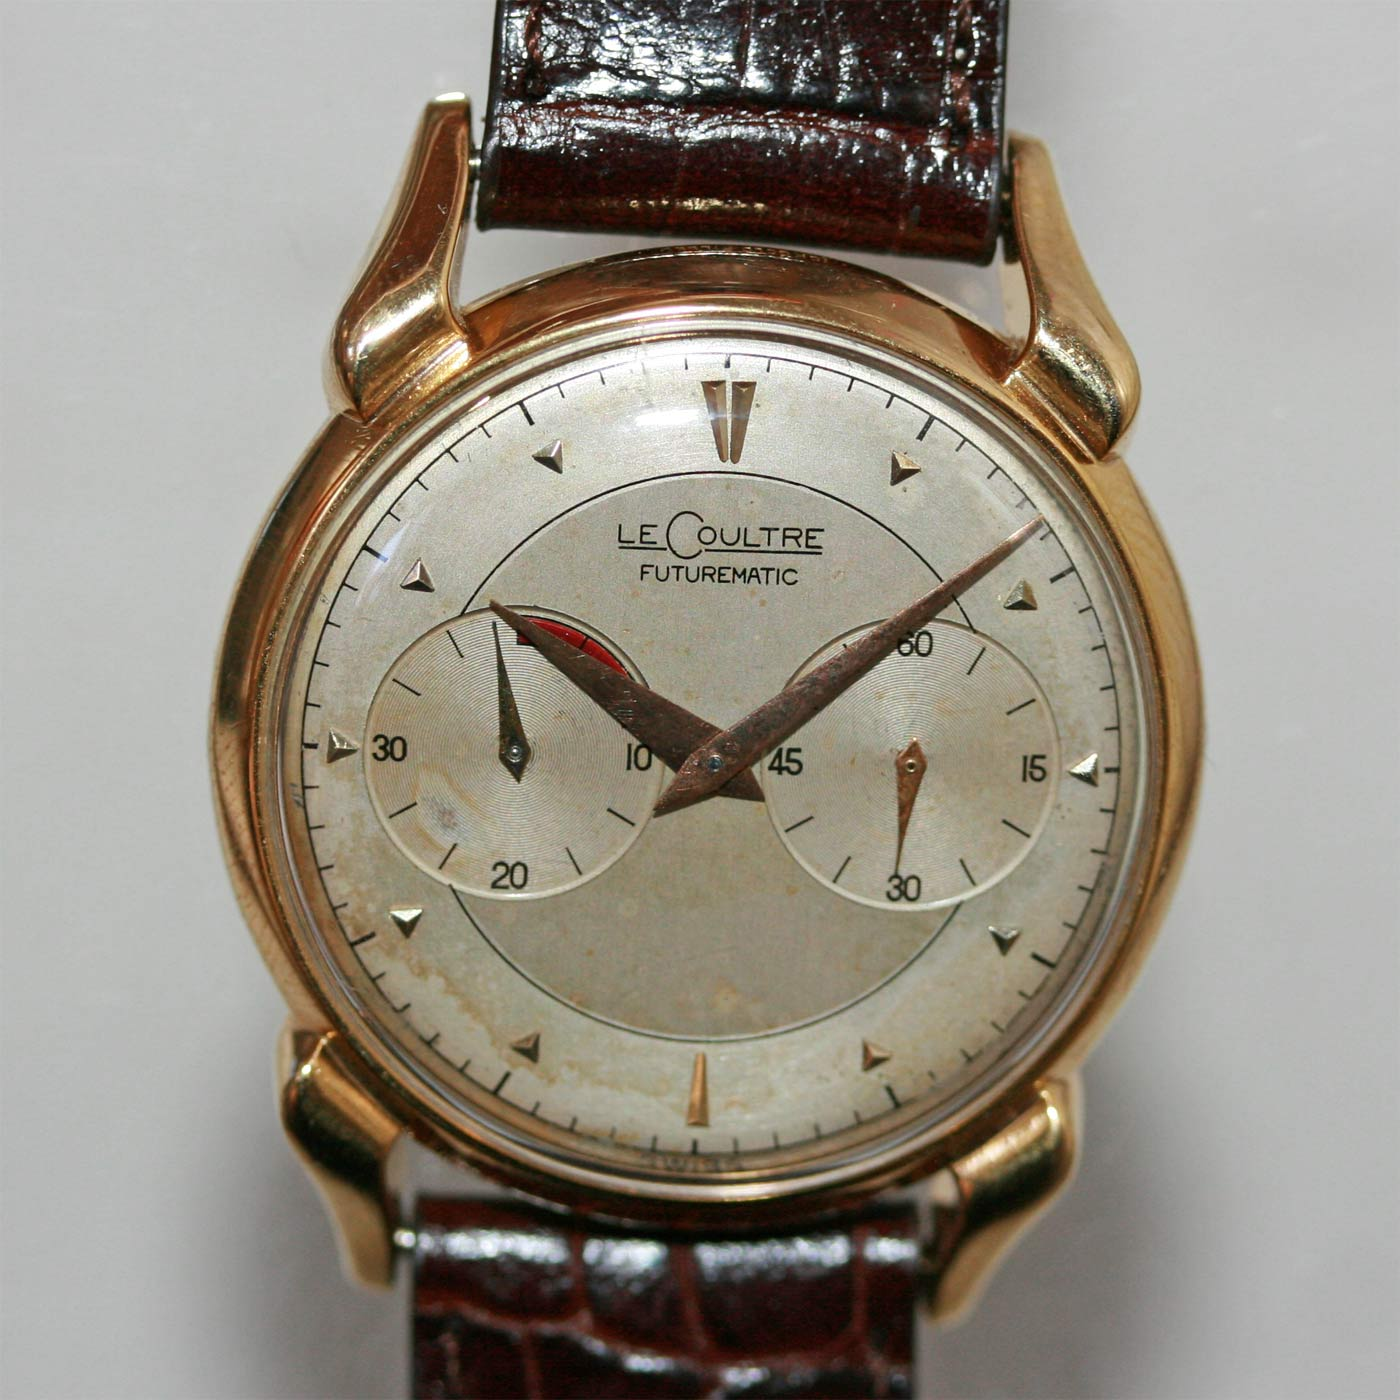 Buy lecoultre futurematic watch sold items sold watches sydney kalmarantiques for Lecoultre watches